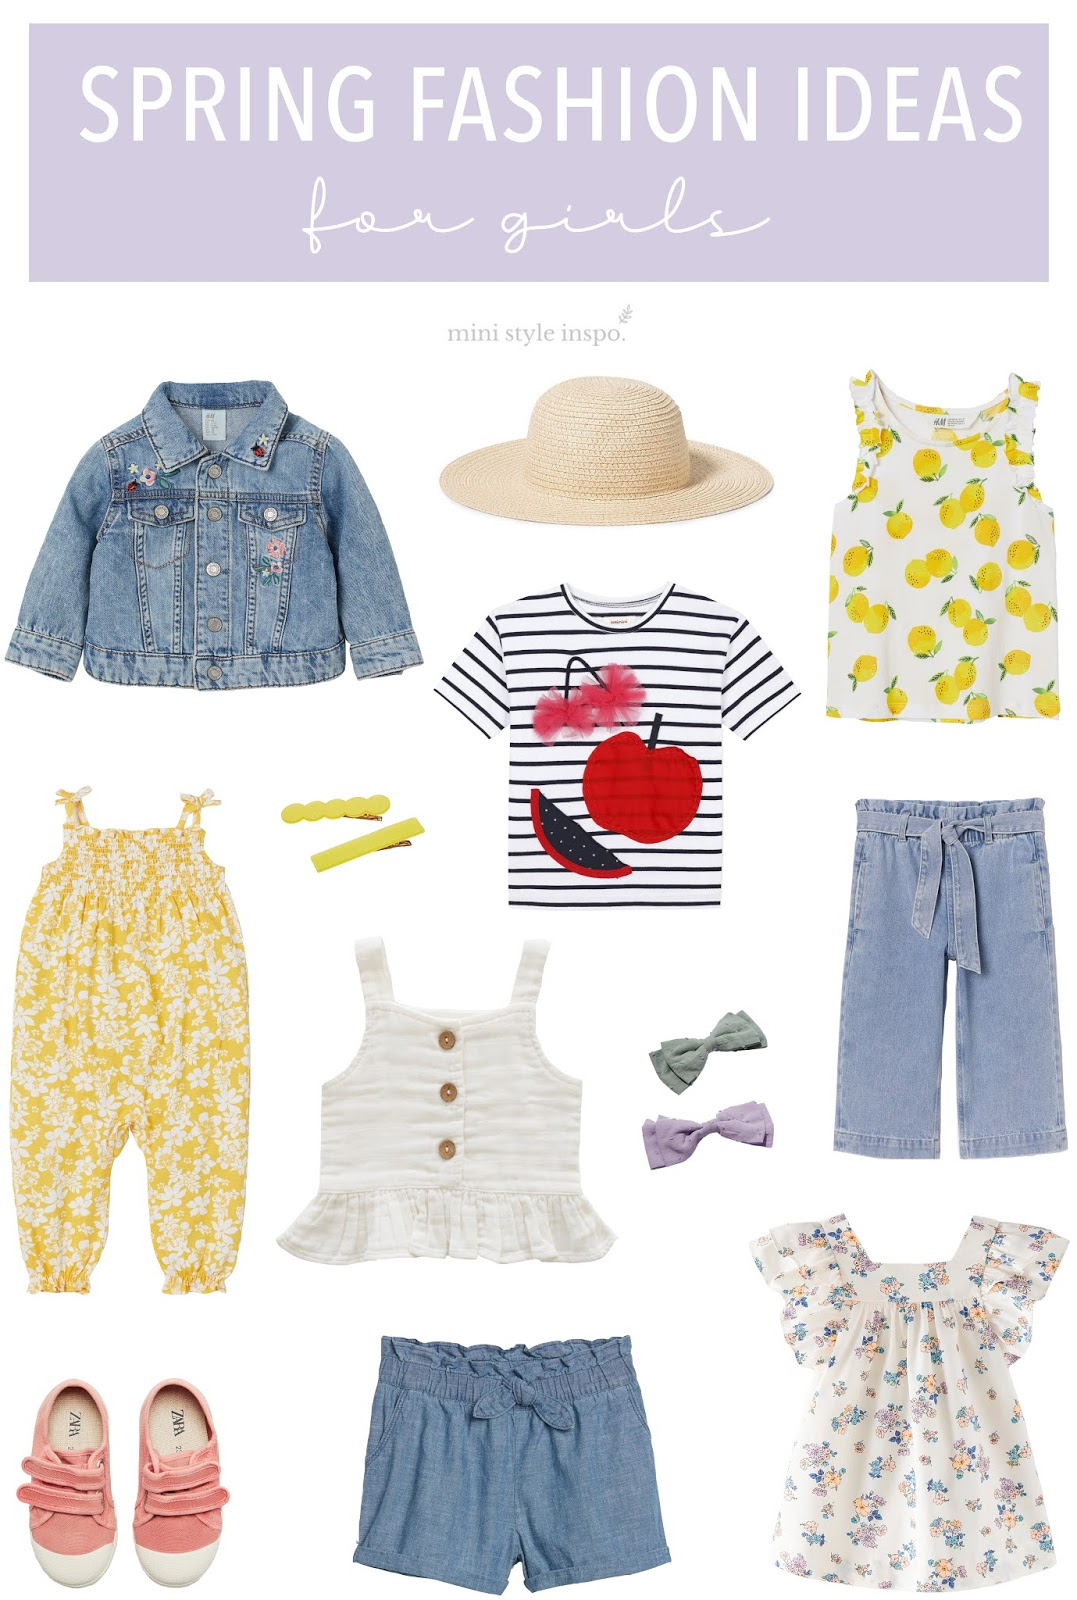 Fashionable Spring Outfits For Girls Little Style Inspo